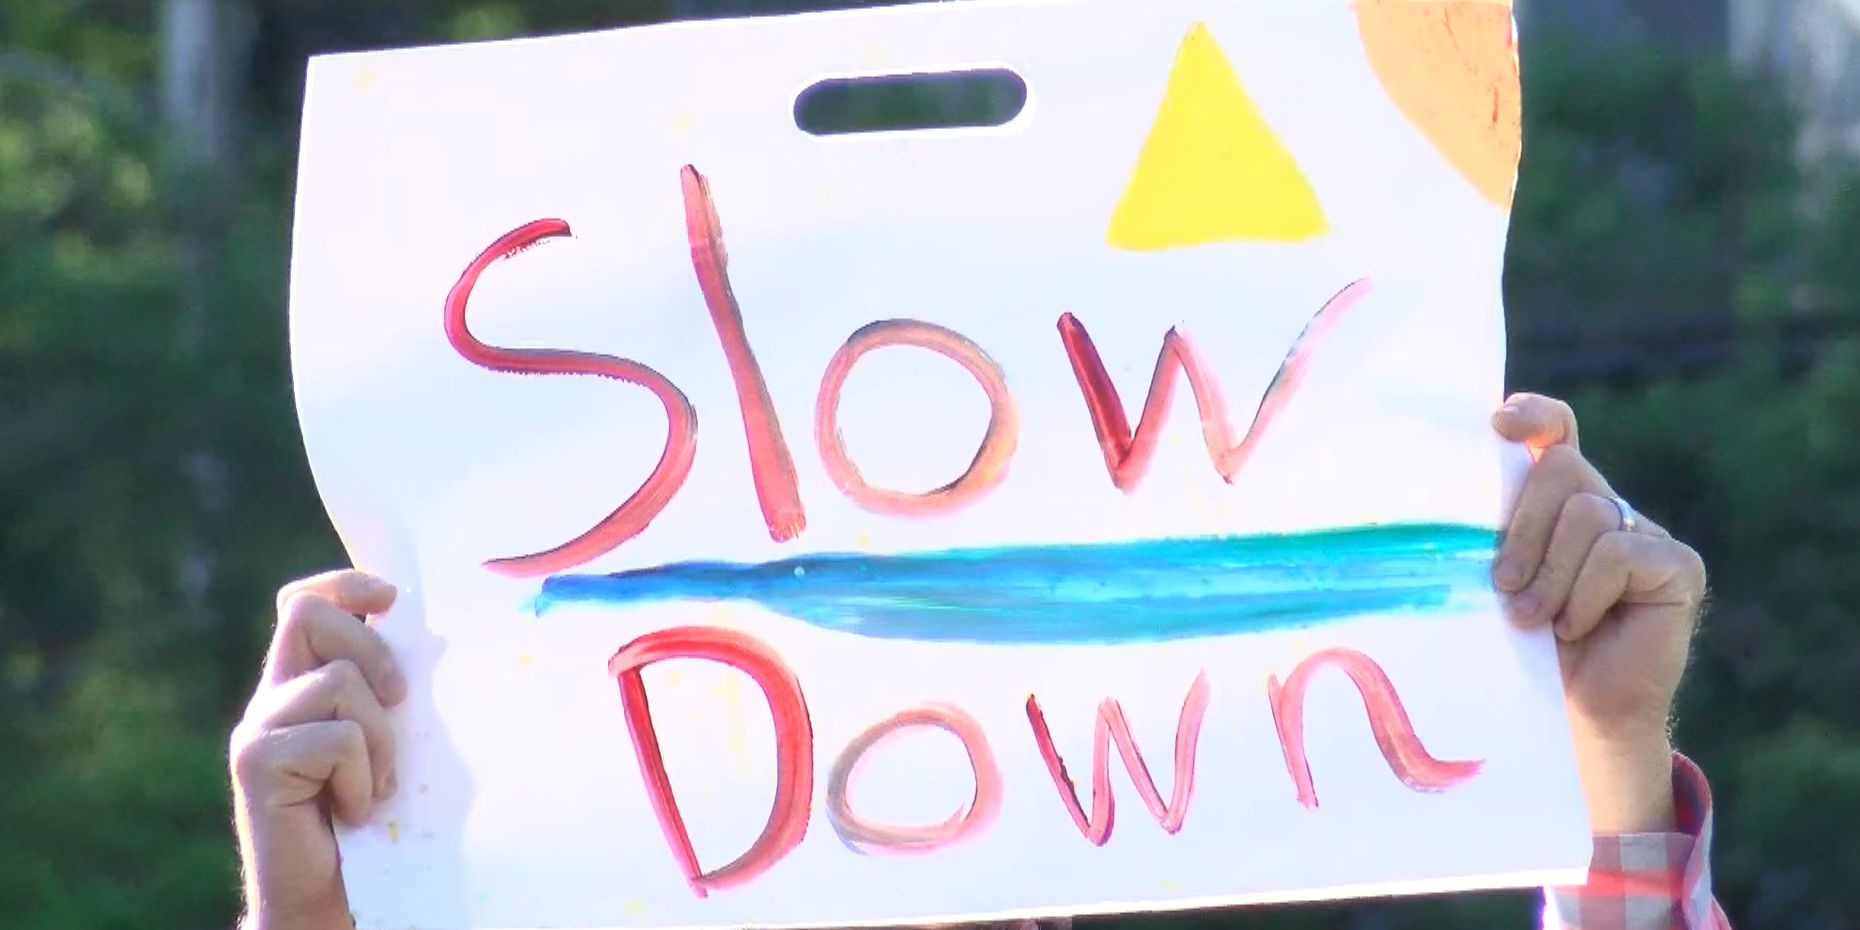 'It's 30′: Residents urge drivers to mind Semmes Ave. speed limit